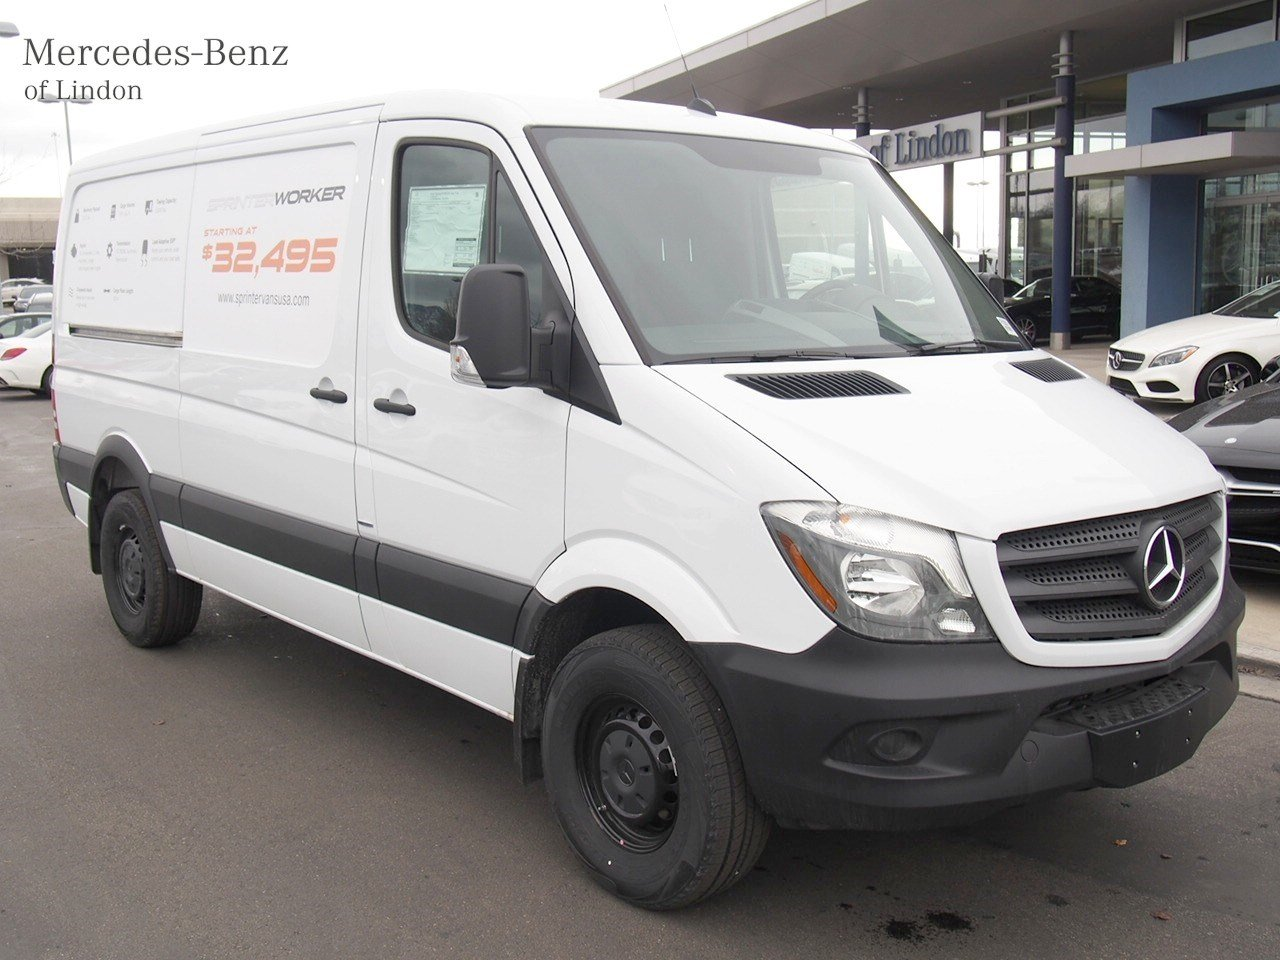 New 2016 mercedes benz sprinter cargo vans worker cargo for Mercedes benz sprinter luxury van price